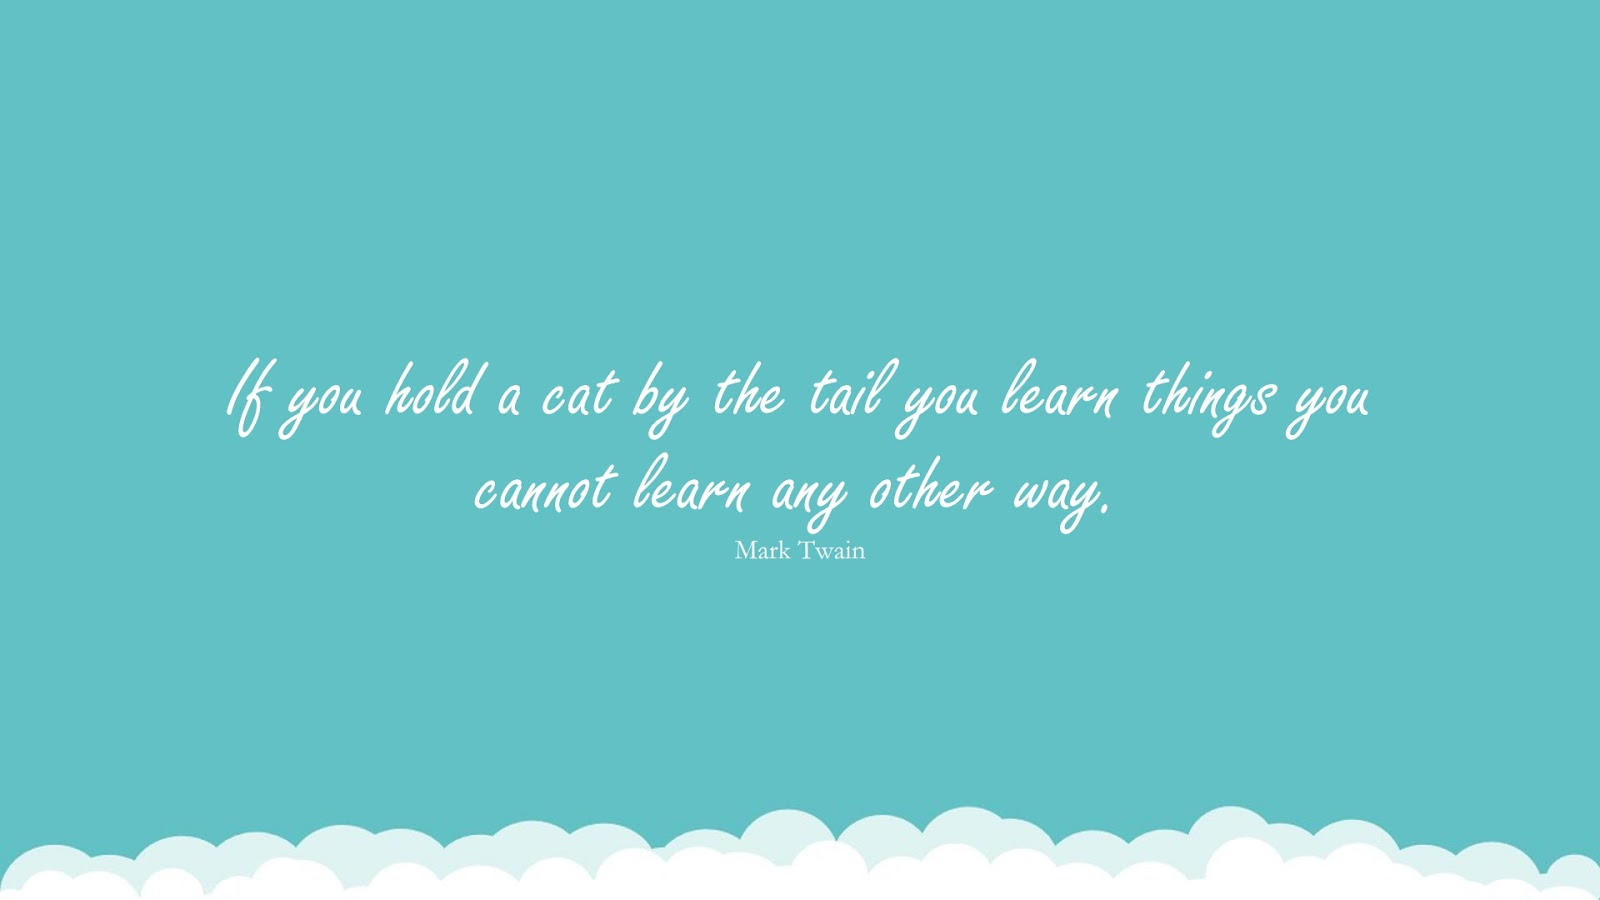 If you hold a cat by the tail you learn things you cannot learn any other way. (Mark Twain);  #LearningQuotes